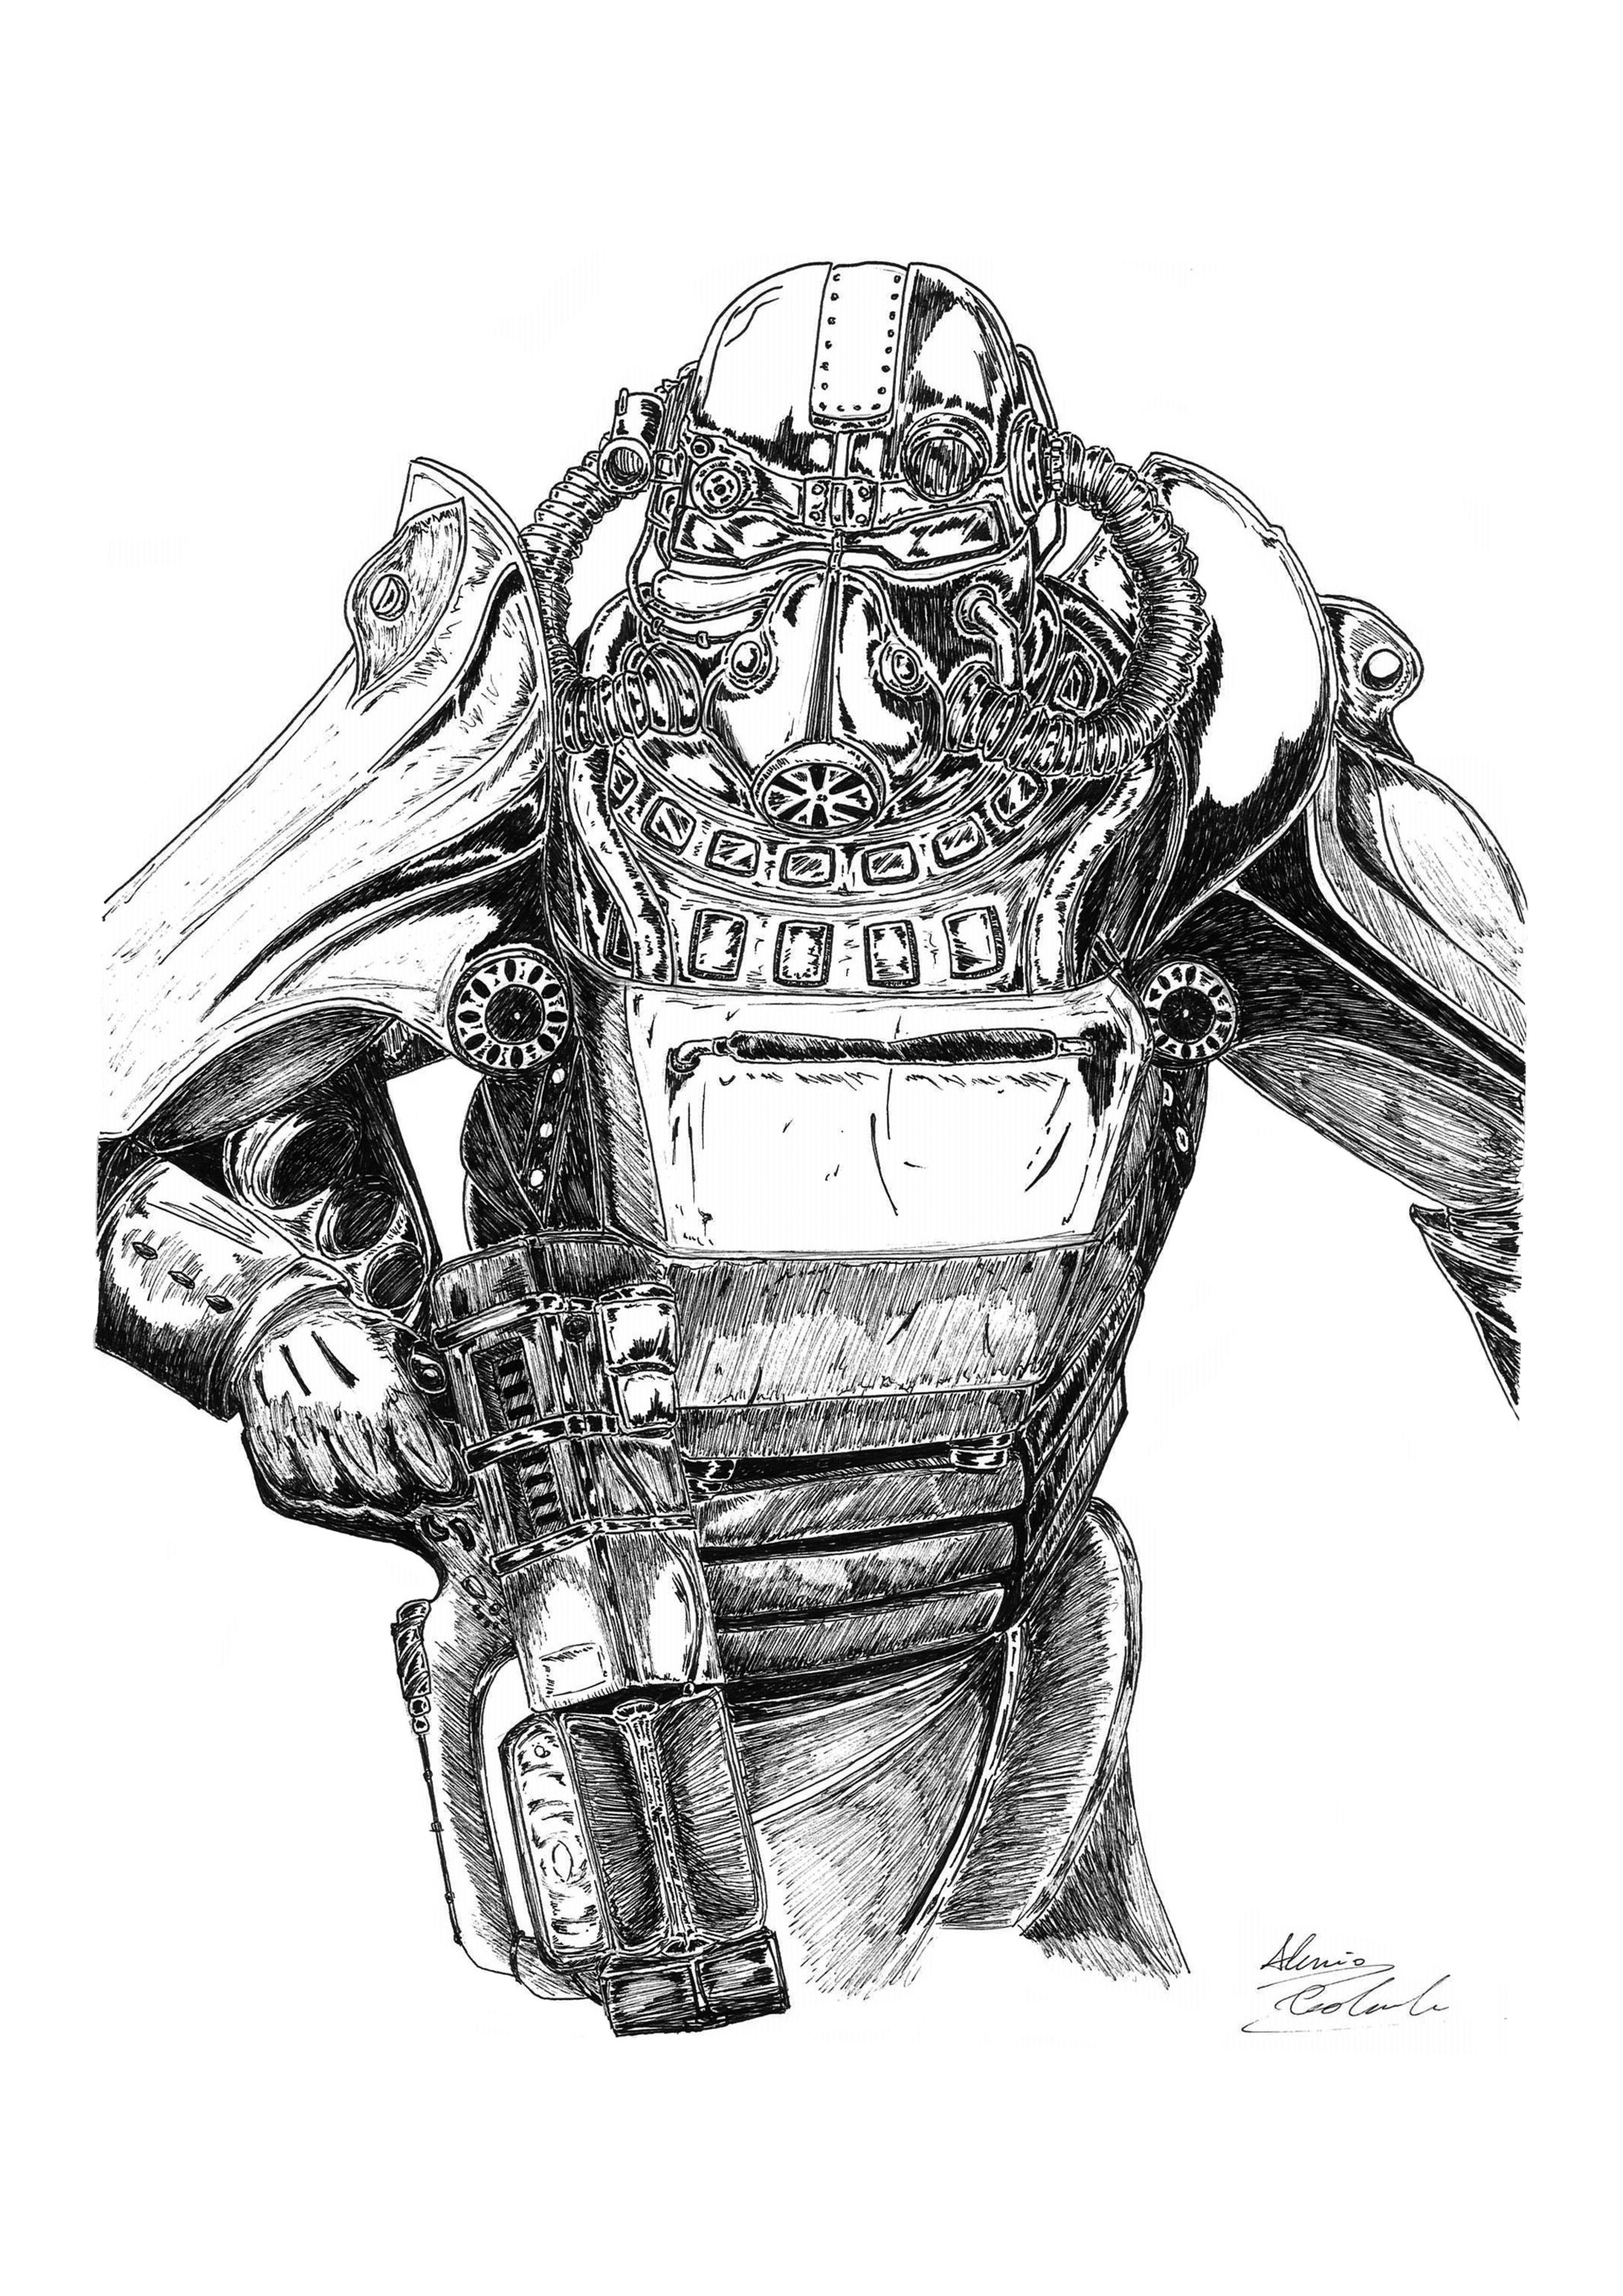 alessio colabianchi fallout 3 concept art ink on paper illustration